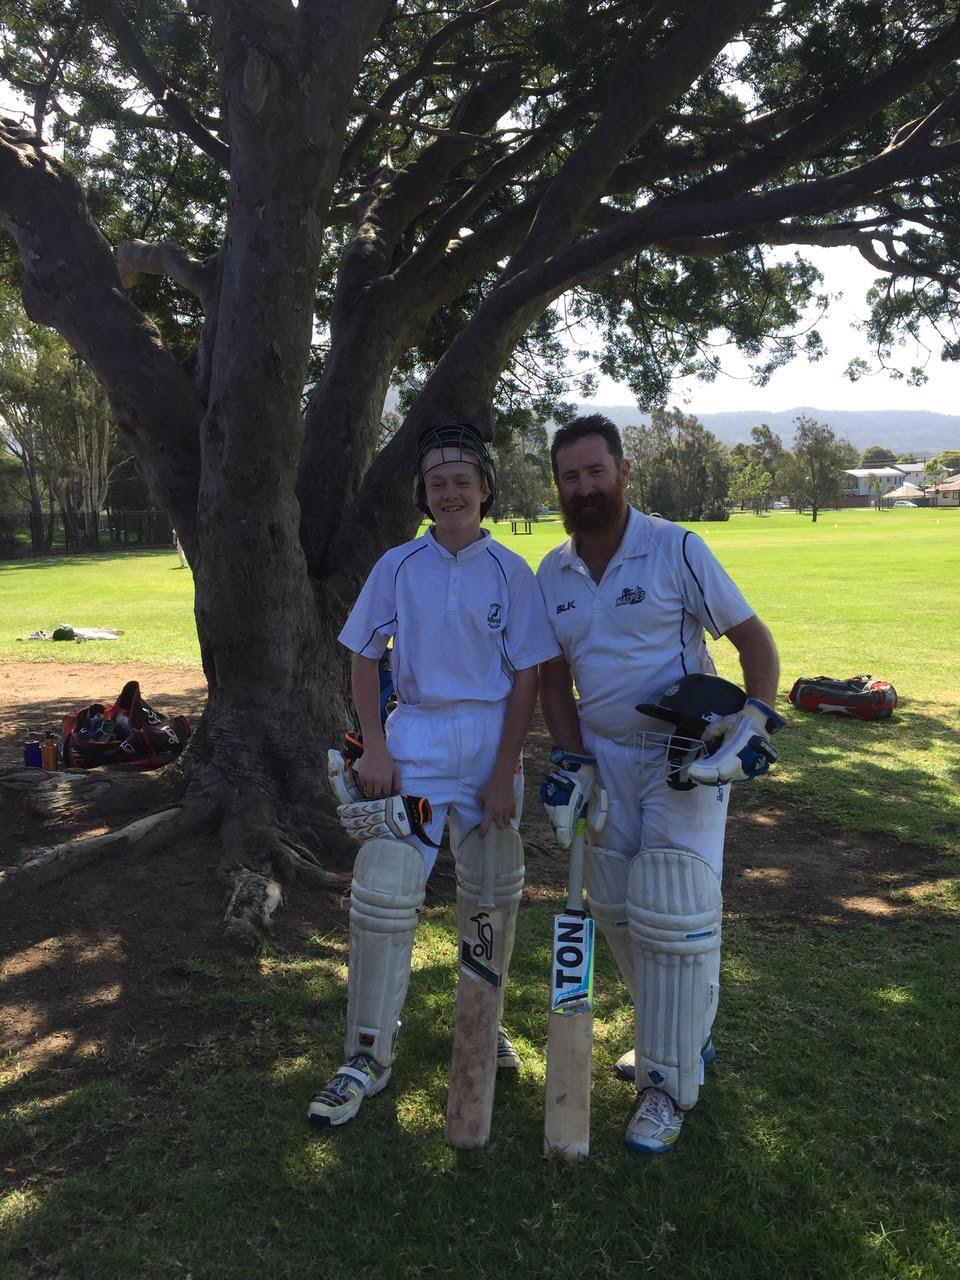 The mum didn't know her kids started cricket and her husband had grown a beard. Photo: Supplied